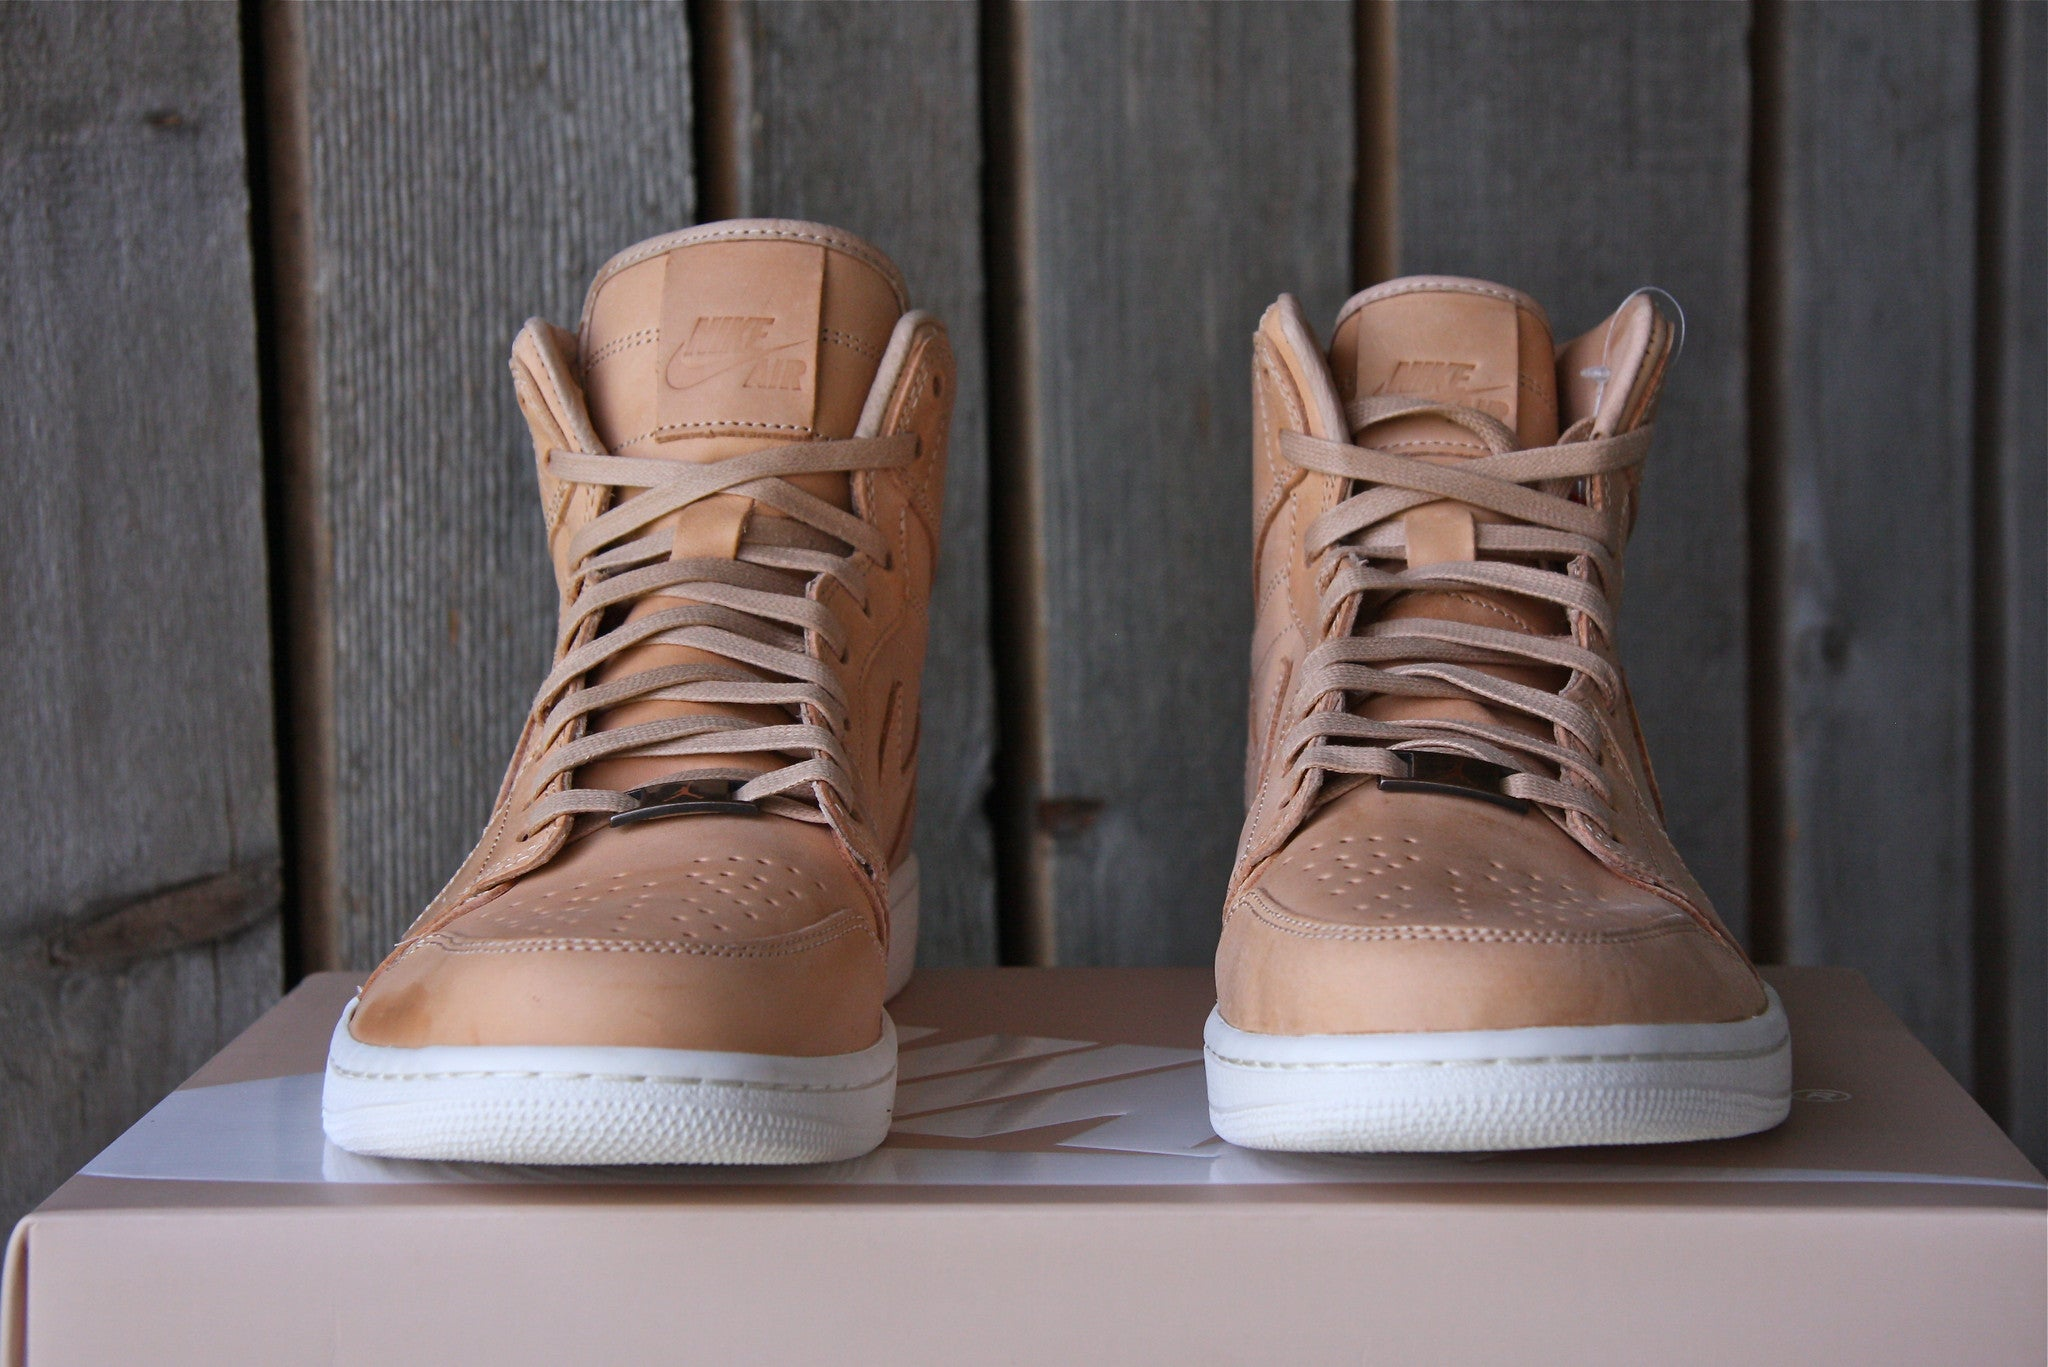 Air Jordan 1 Retro OG High Pinnacle (Vachetta Tan)